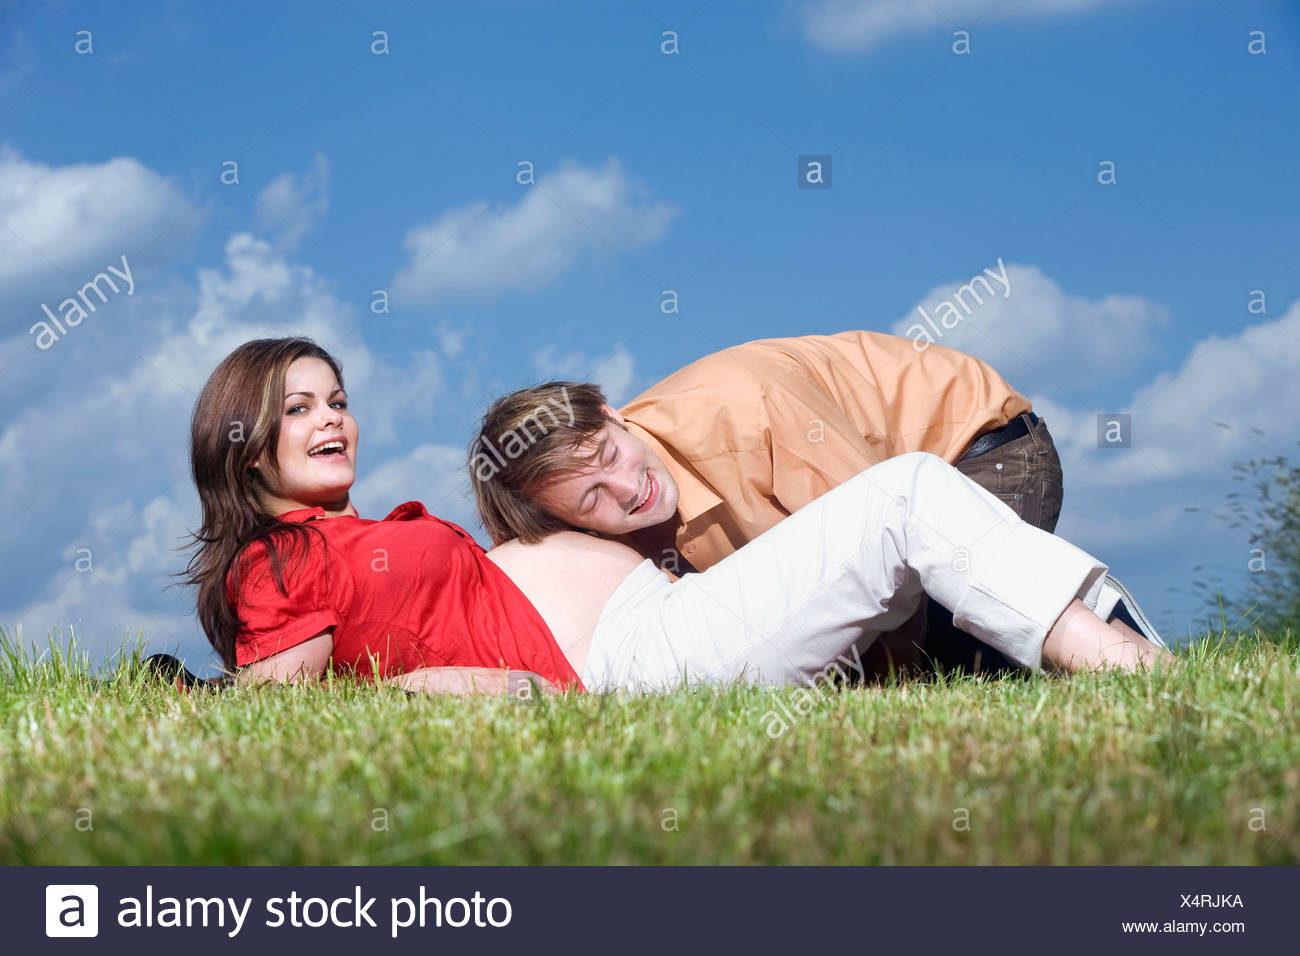 Woman lying in meadow, man with head on pregnant woman's belly, portrait - Stock Image